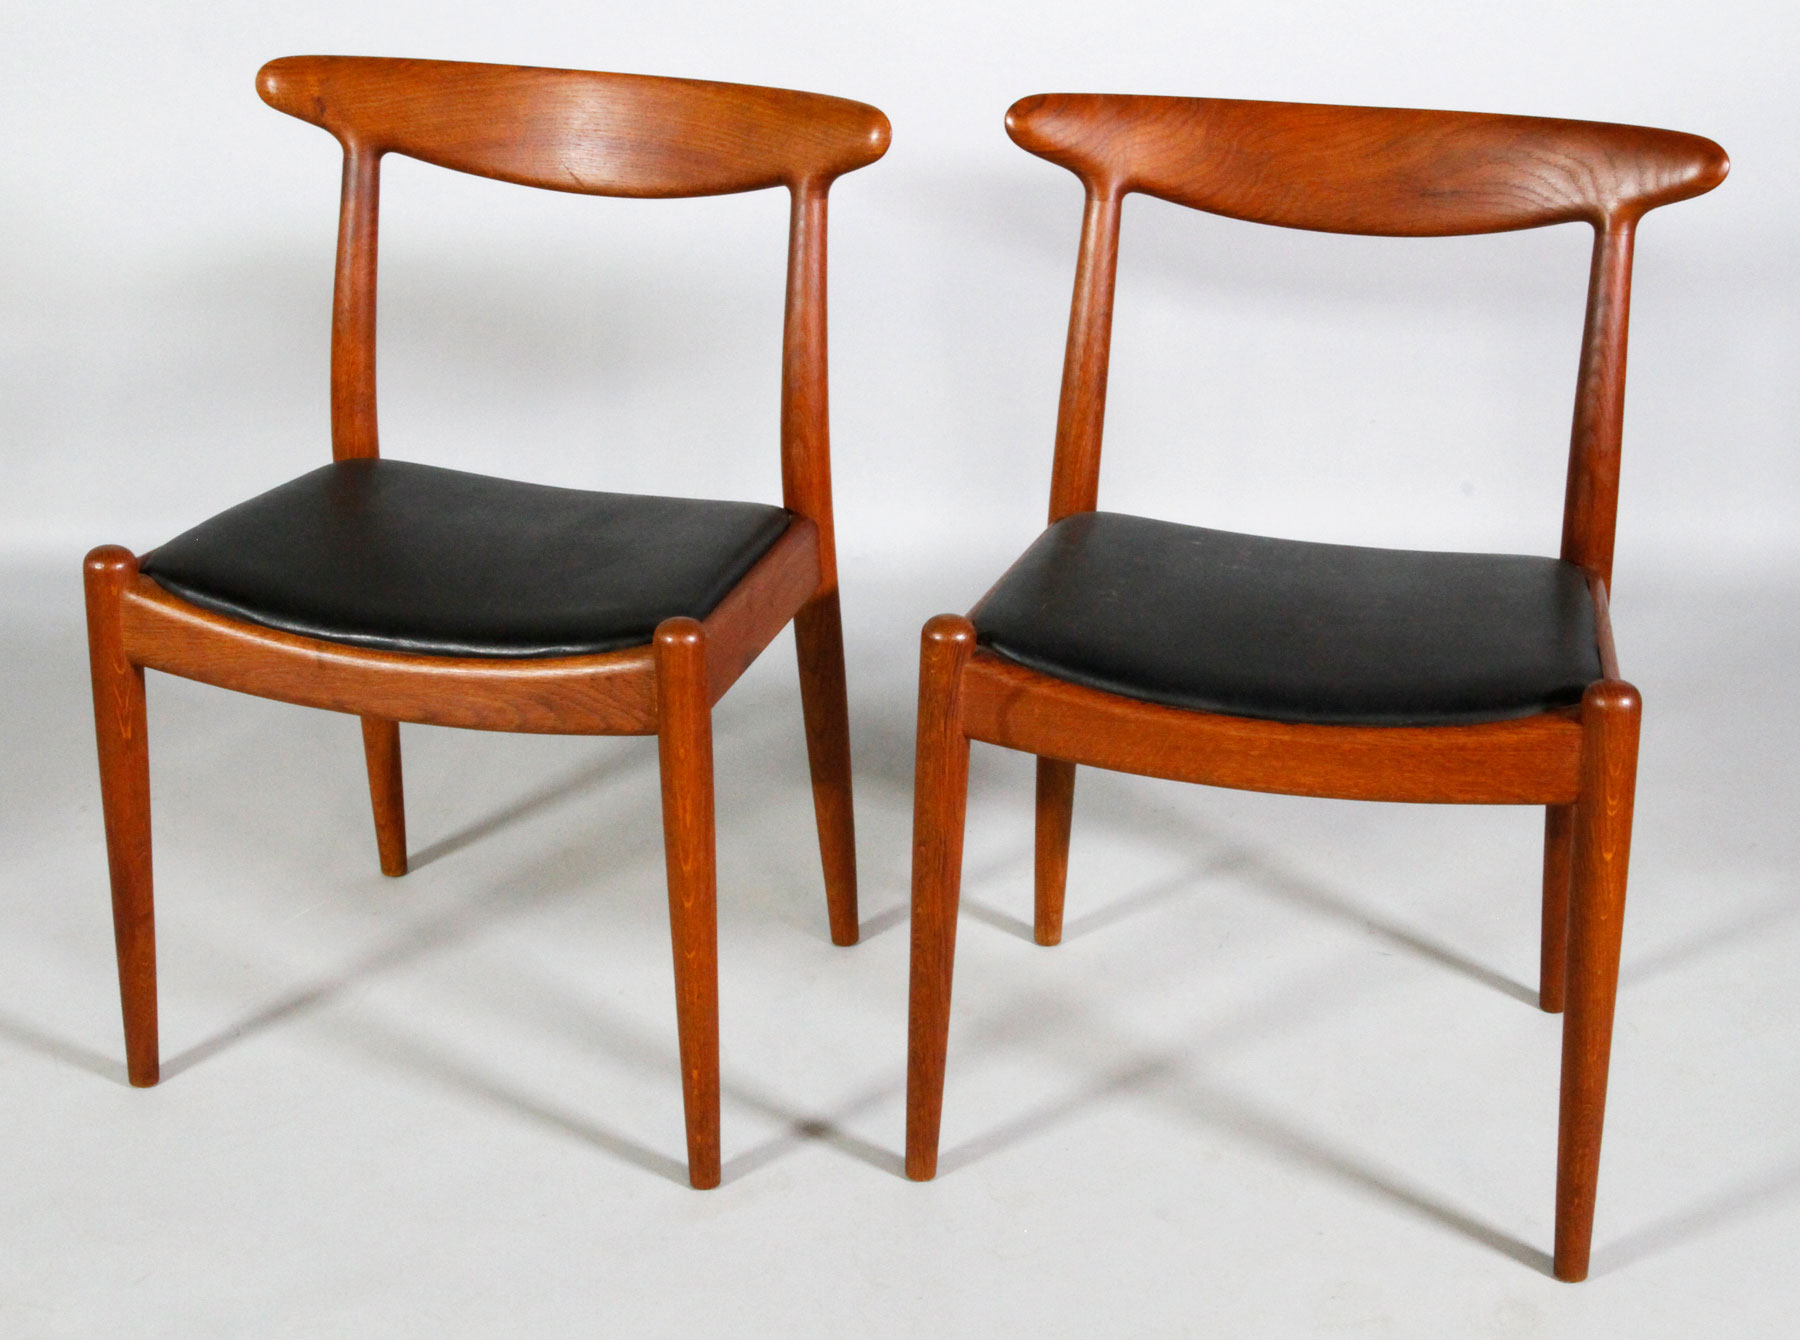 Pair Of Hans Wegner Side Chairs, Oak With Black Leather Seats, Early 1960s,  Each With Branded Mark Under Seat, C. M. Madsens Fabriken, Haarby Danmark,  ...